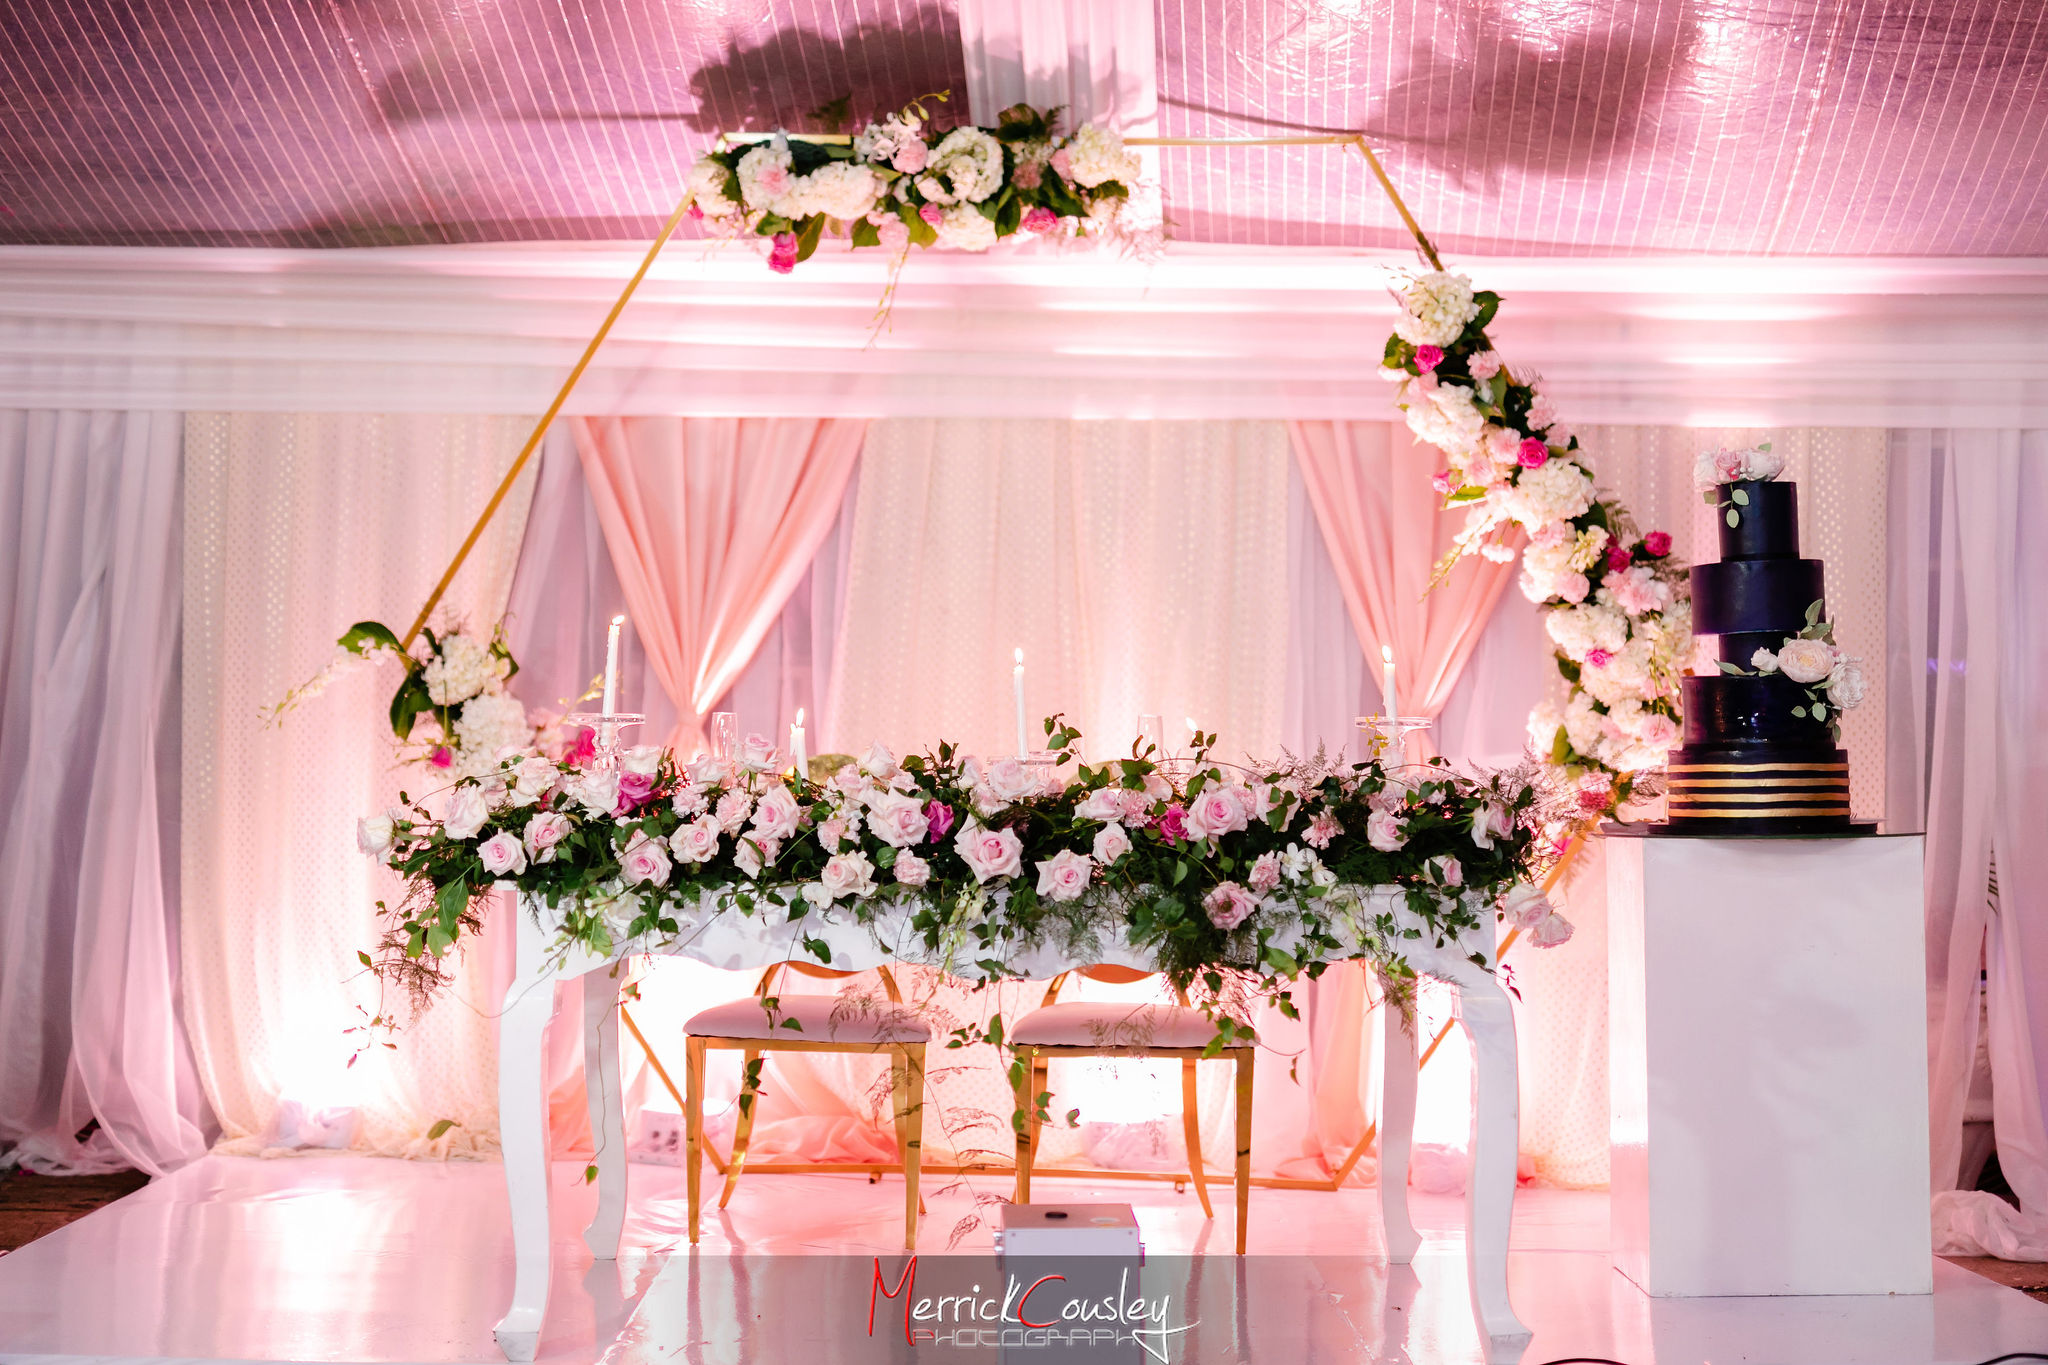 Decor by Luxe Event Design at Endless Summer Villa Montego Bay Jamaica